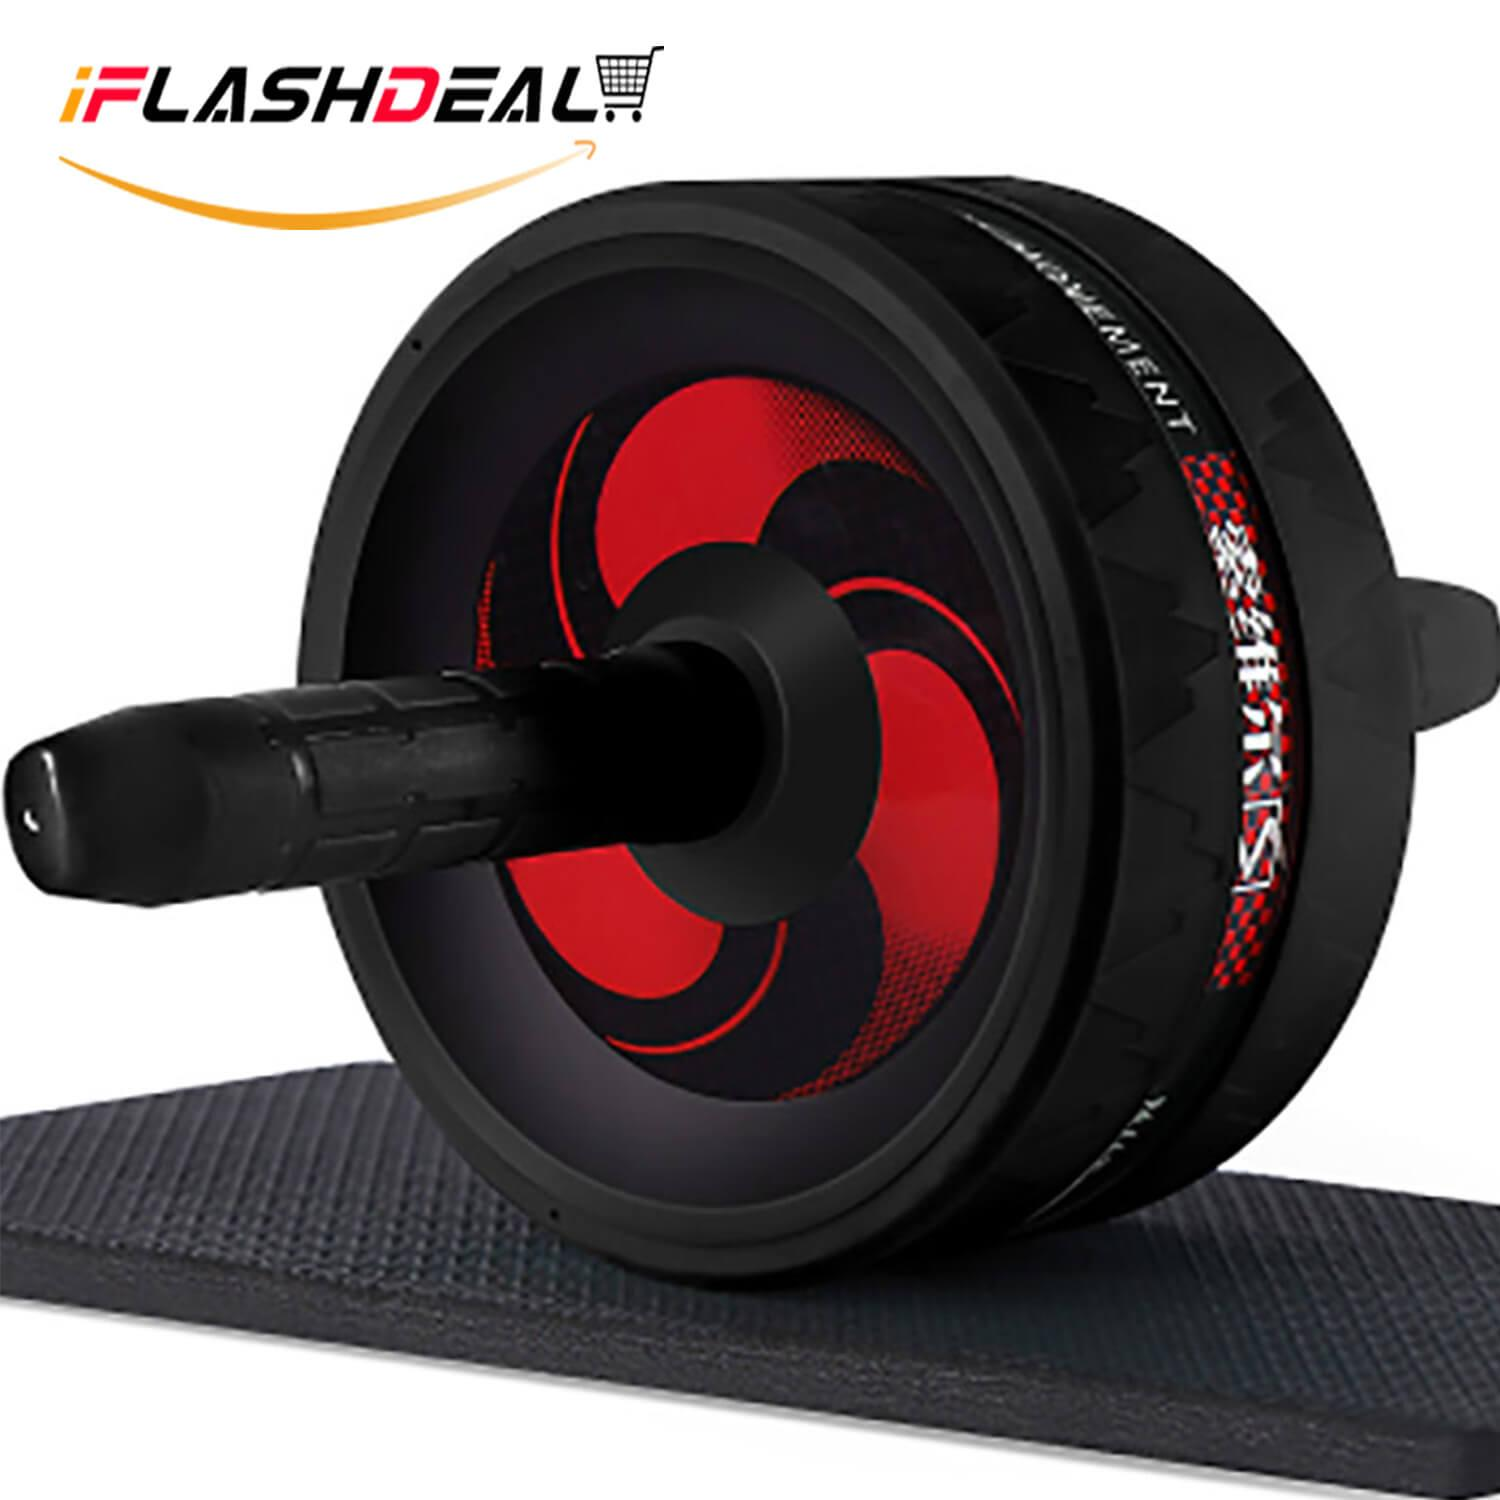 7a963ec02a iFlashDeal AB Wheel Exercise Fitness Wheel Abs Roller Workout System With  Free Knee Mat Core Abdominal